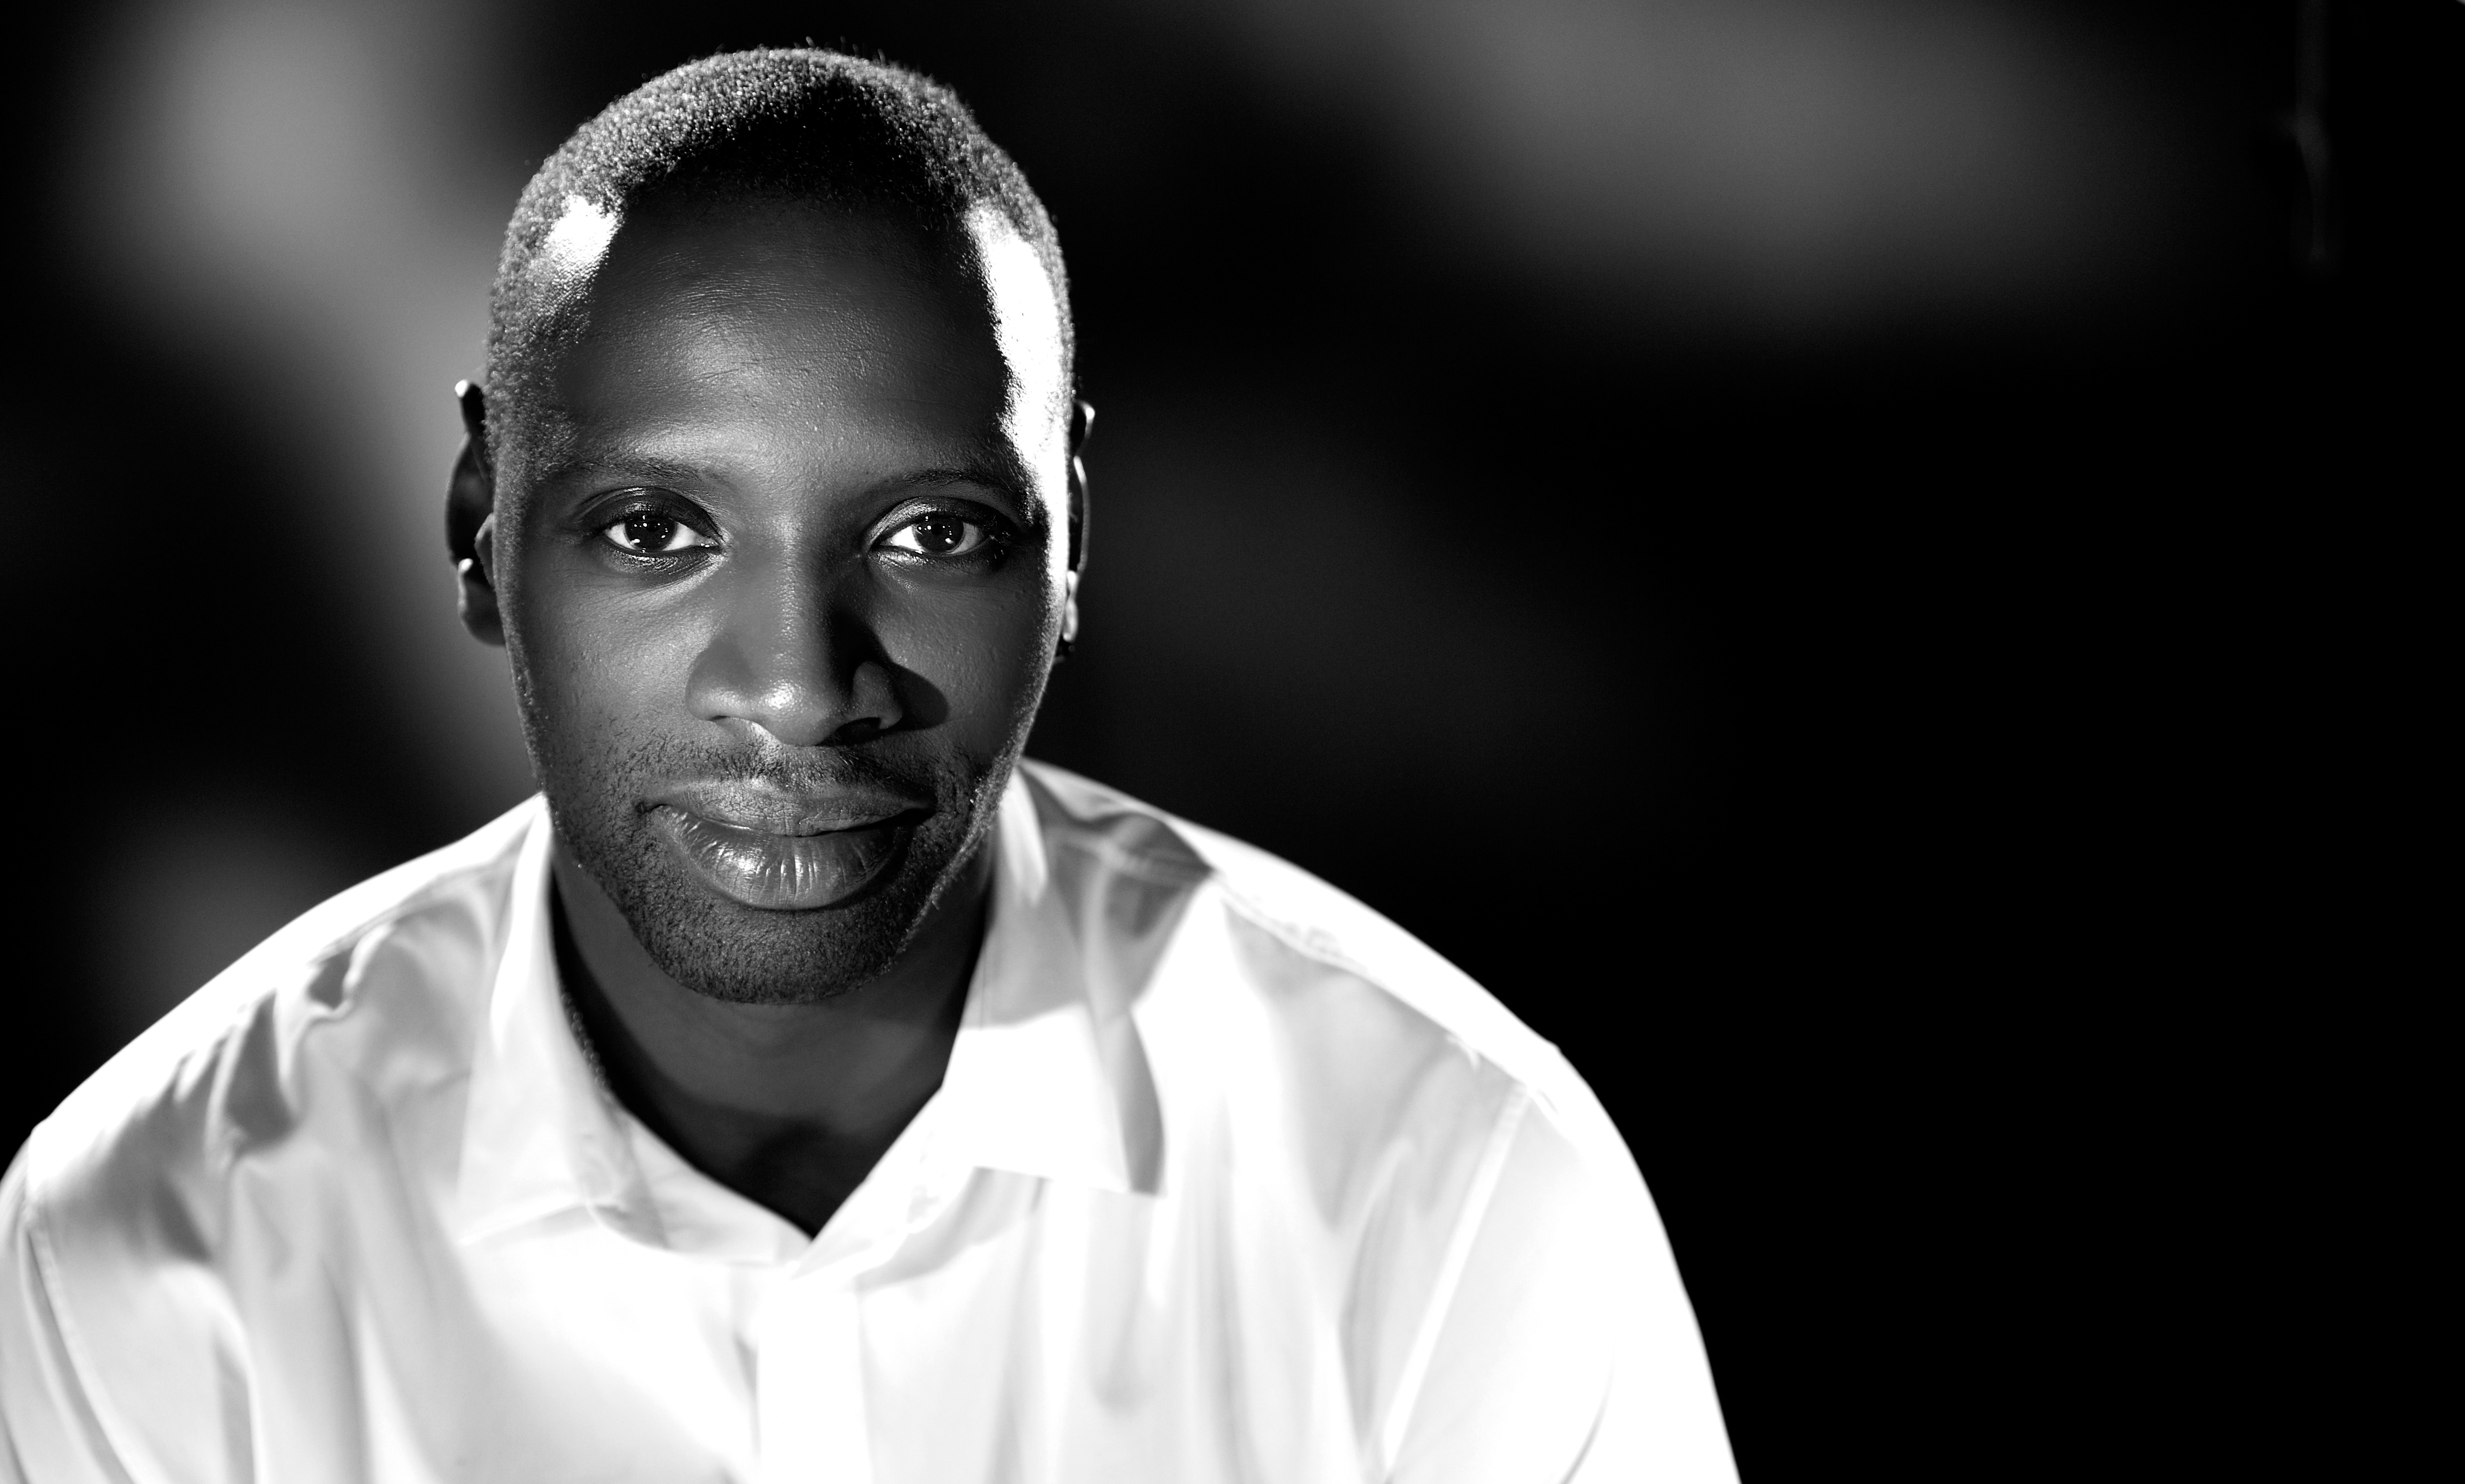 5603x3373 - Omar Sy Wallpapers 6